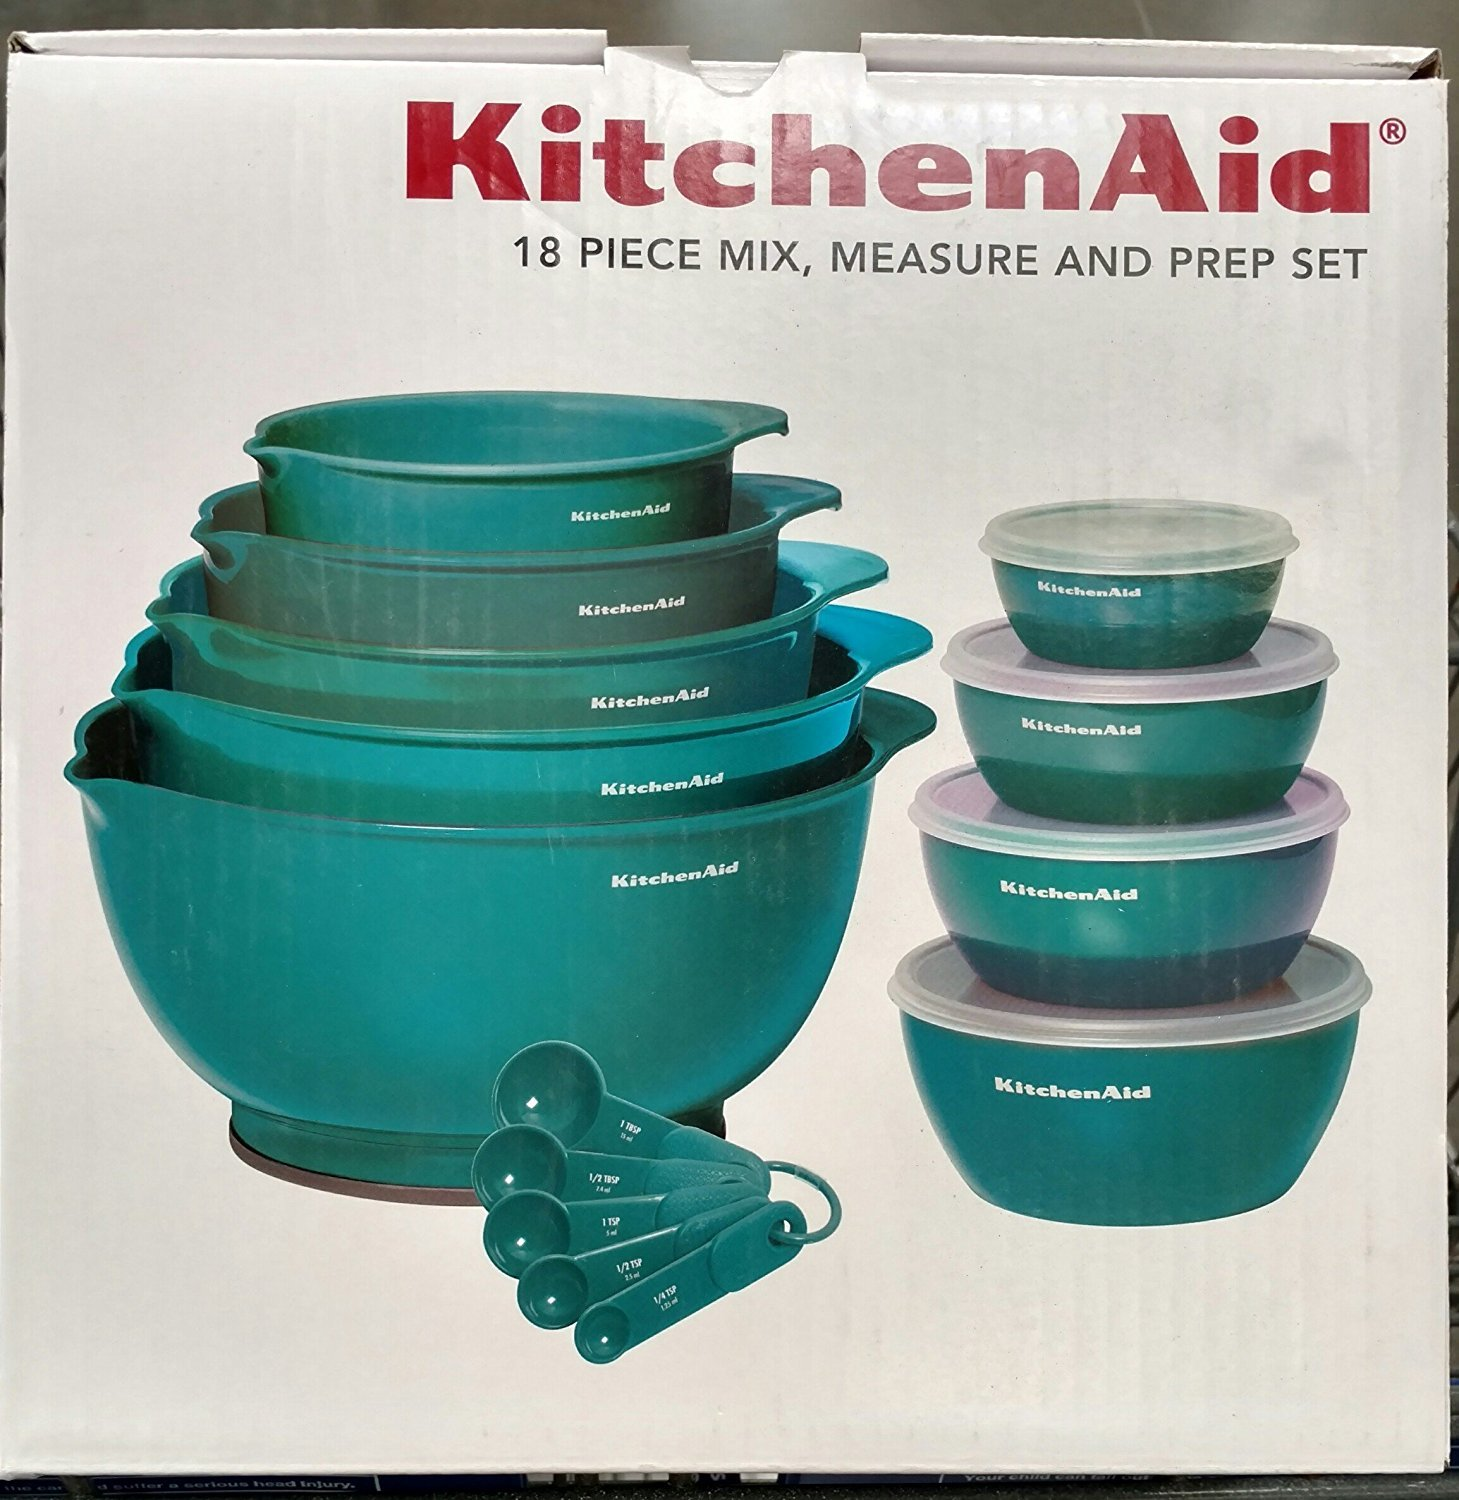 KitchenAid 18 Piece Mix, Measure and Prep Bowl Set (Turquoise ...